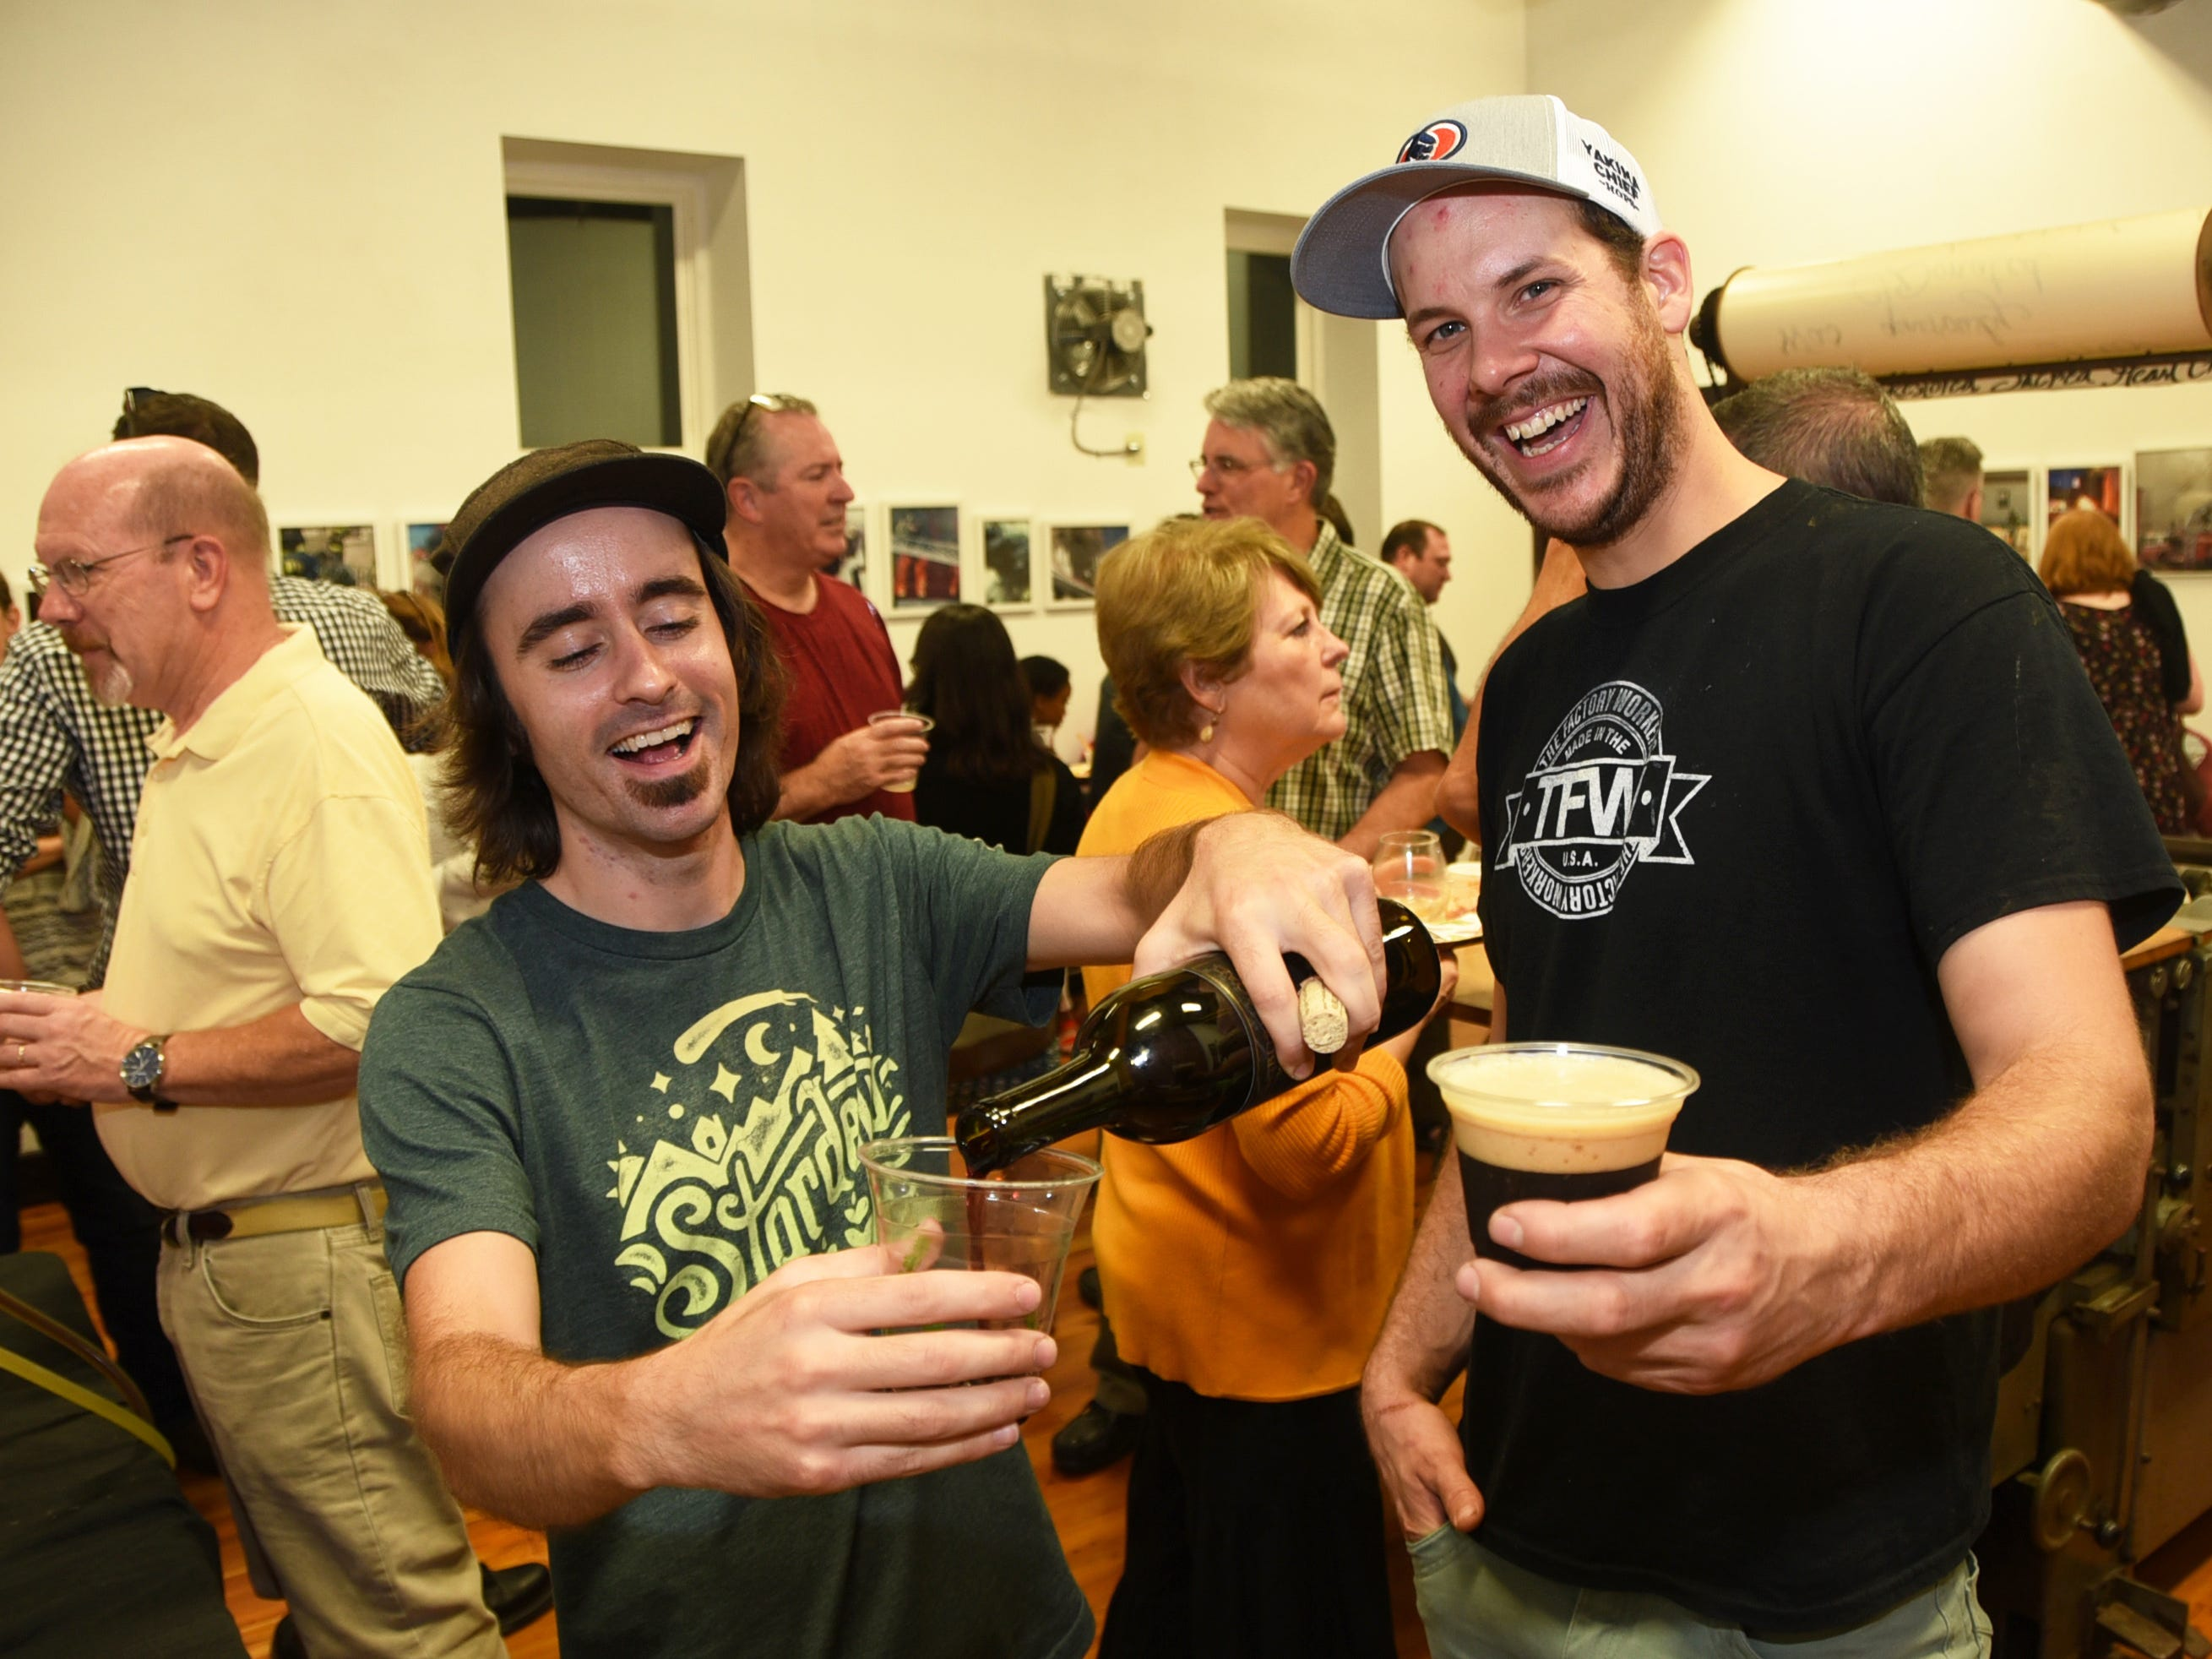 Eric Zola of Auburn Road Winery, left, and Eli Facchinei of Tonewood Brewing attend the #WasteNot for CFET event at the FireWorks Gallery in South Camden on Saturday, September 29, 2018.  The Courier-Post partnered with the Farm & Fisherman Tavern in Cherry Hill and other community organizations to hold the event that offered a special tasting, farm tour and community conversation about reducing food waste.